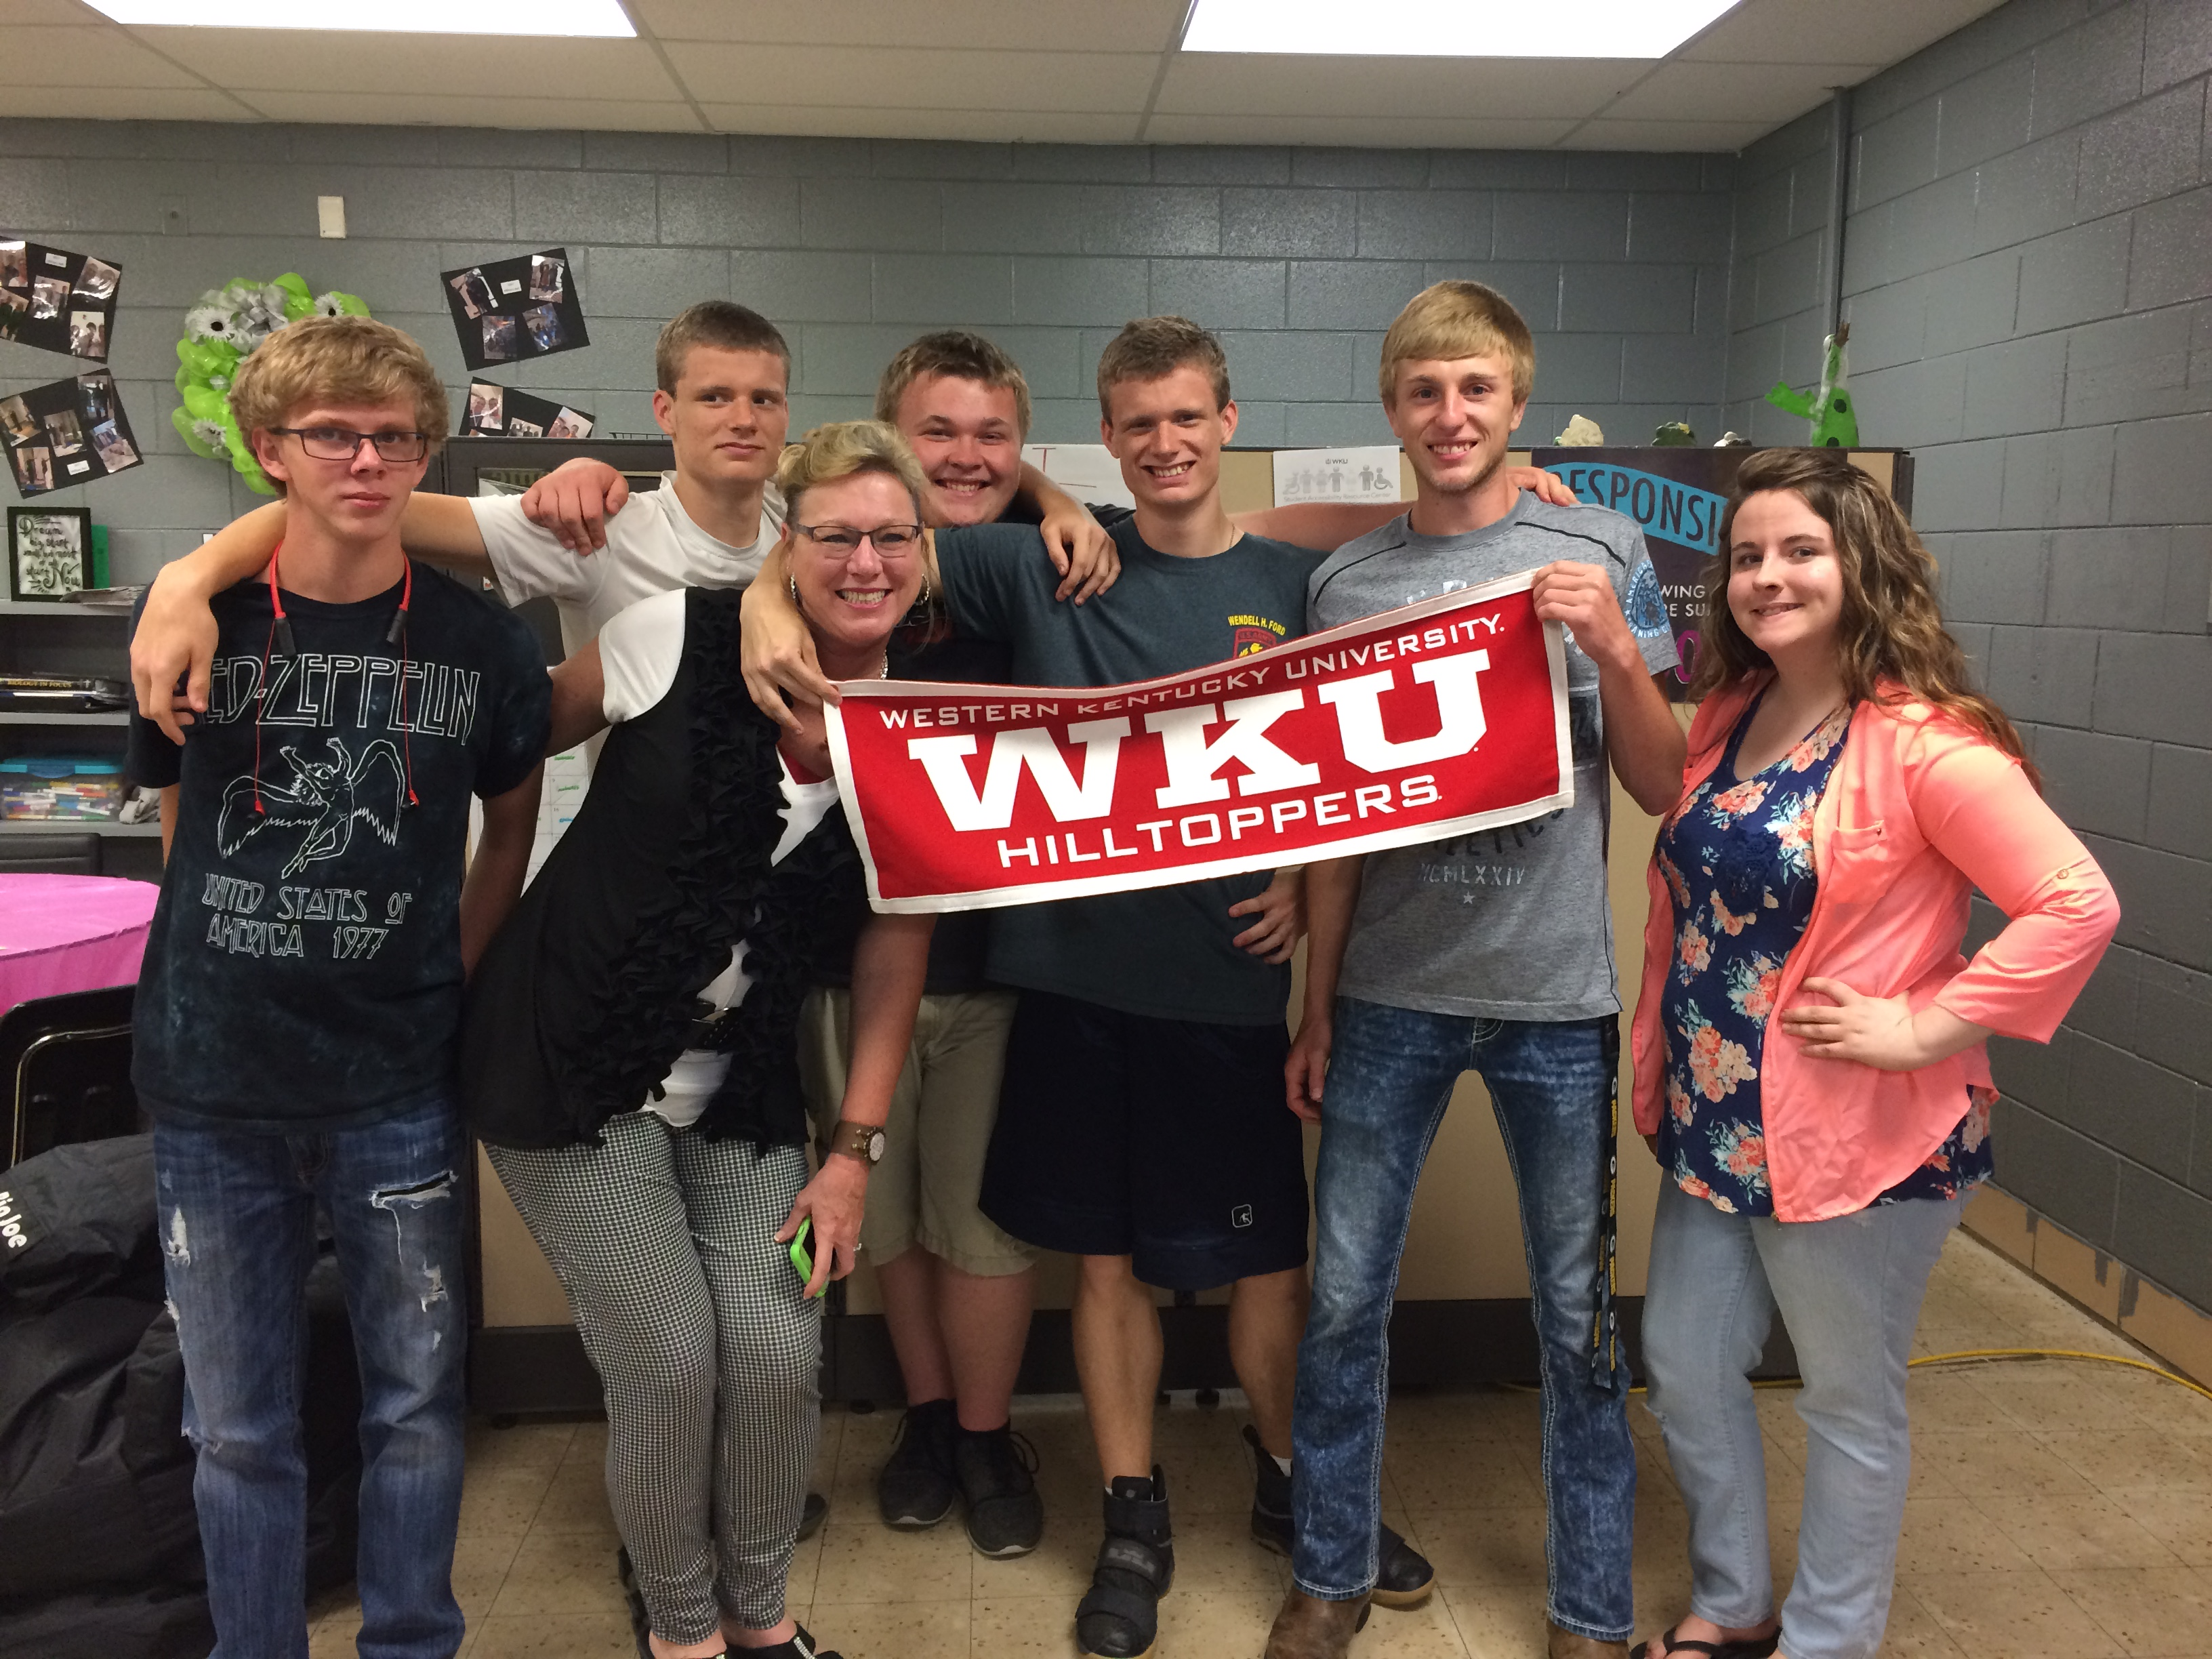 Six Clinton County High School students earned one credit hour from Western Kentucky University for completing the online course College & Career Explorations.